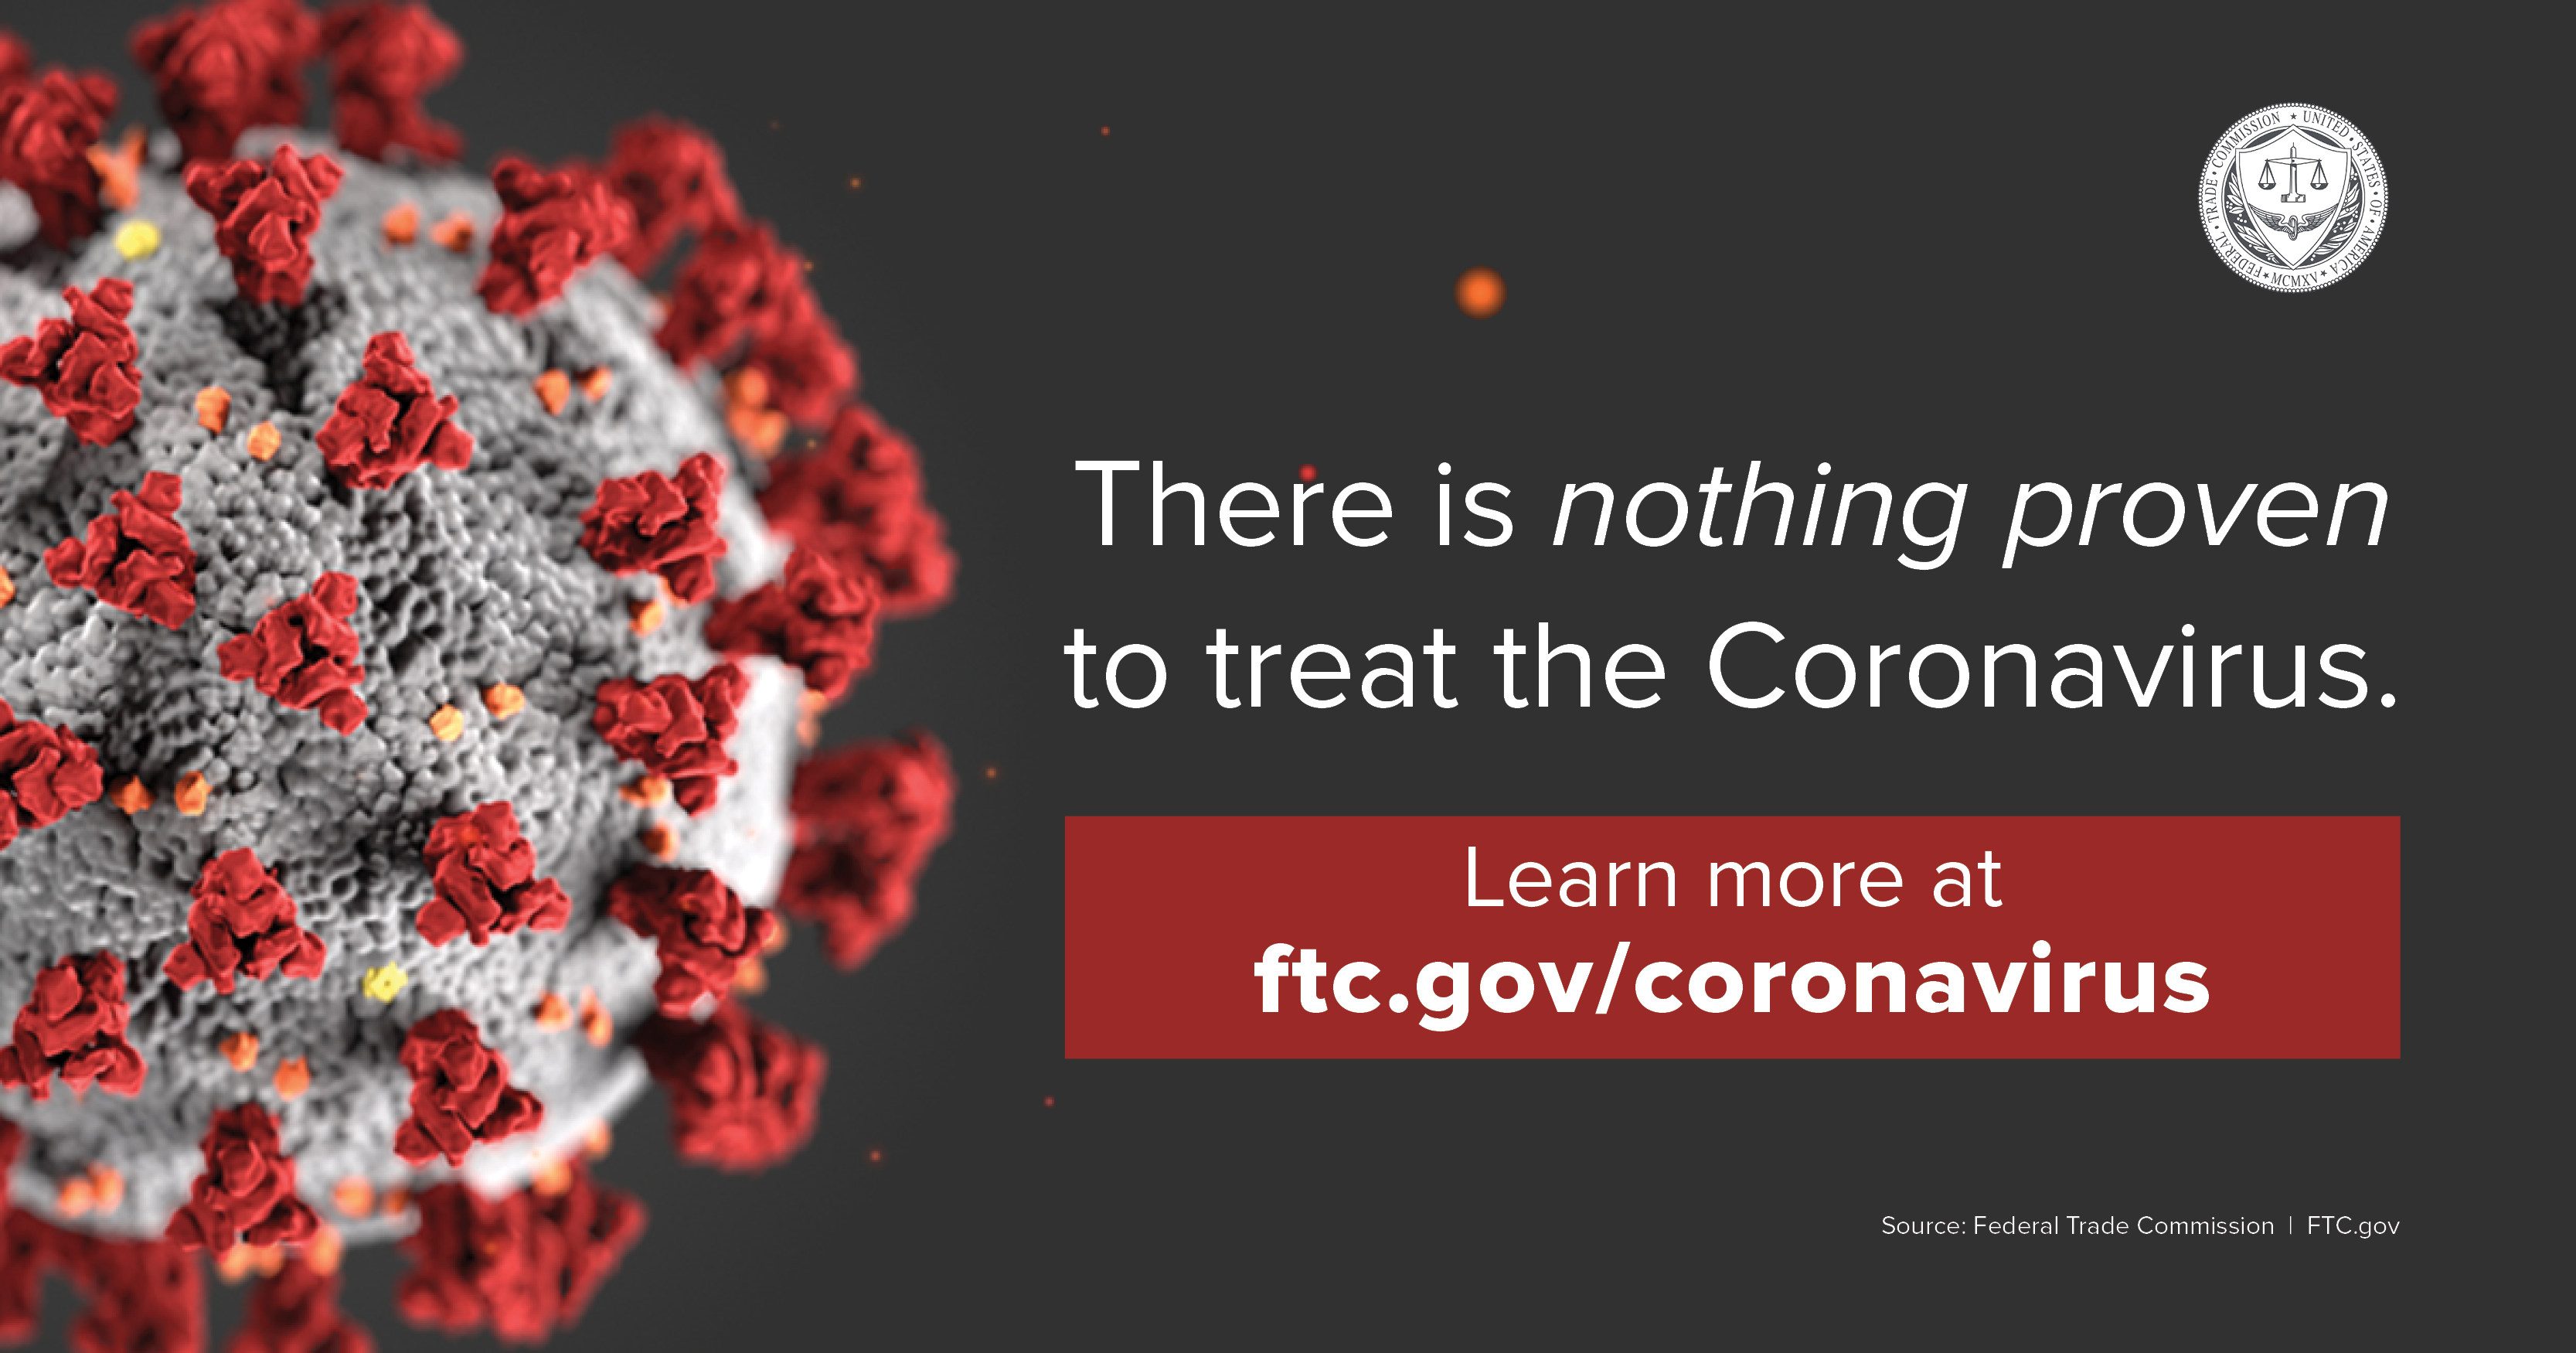 There is nothing proven to treat the Coronavirus